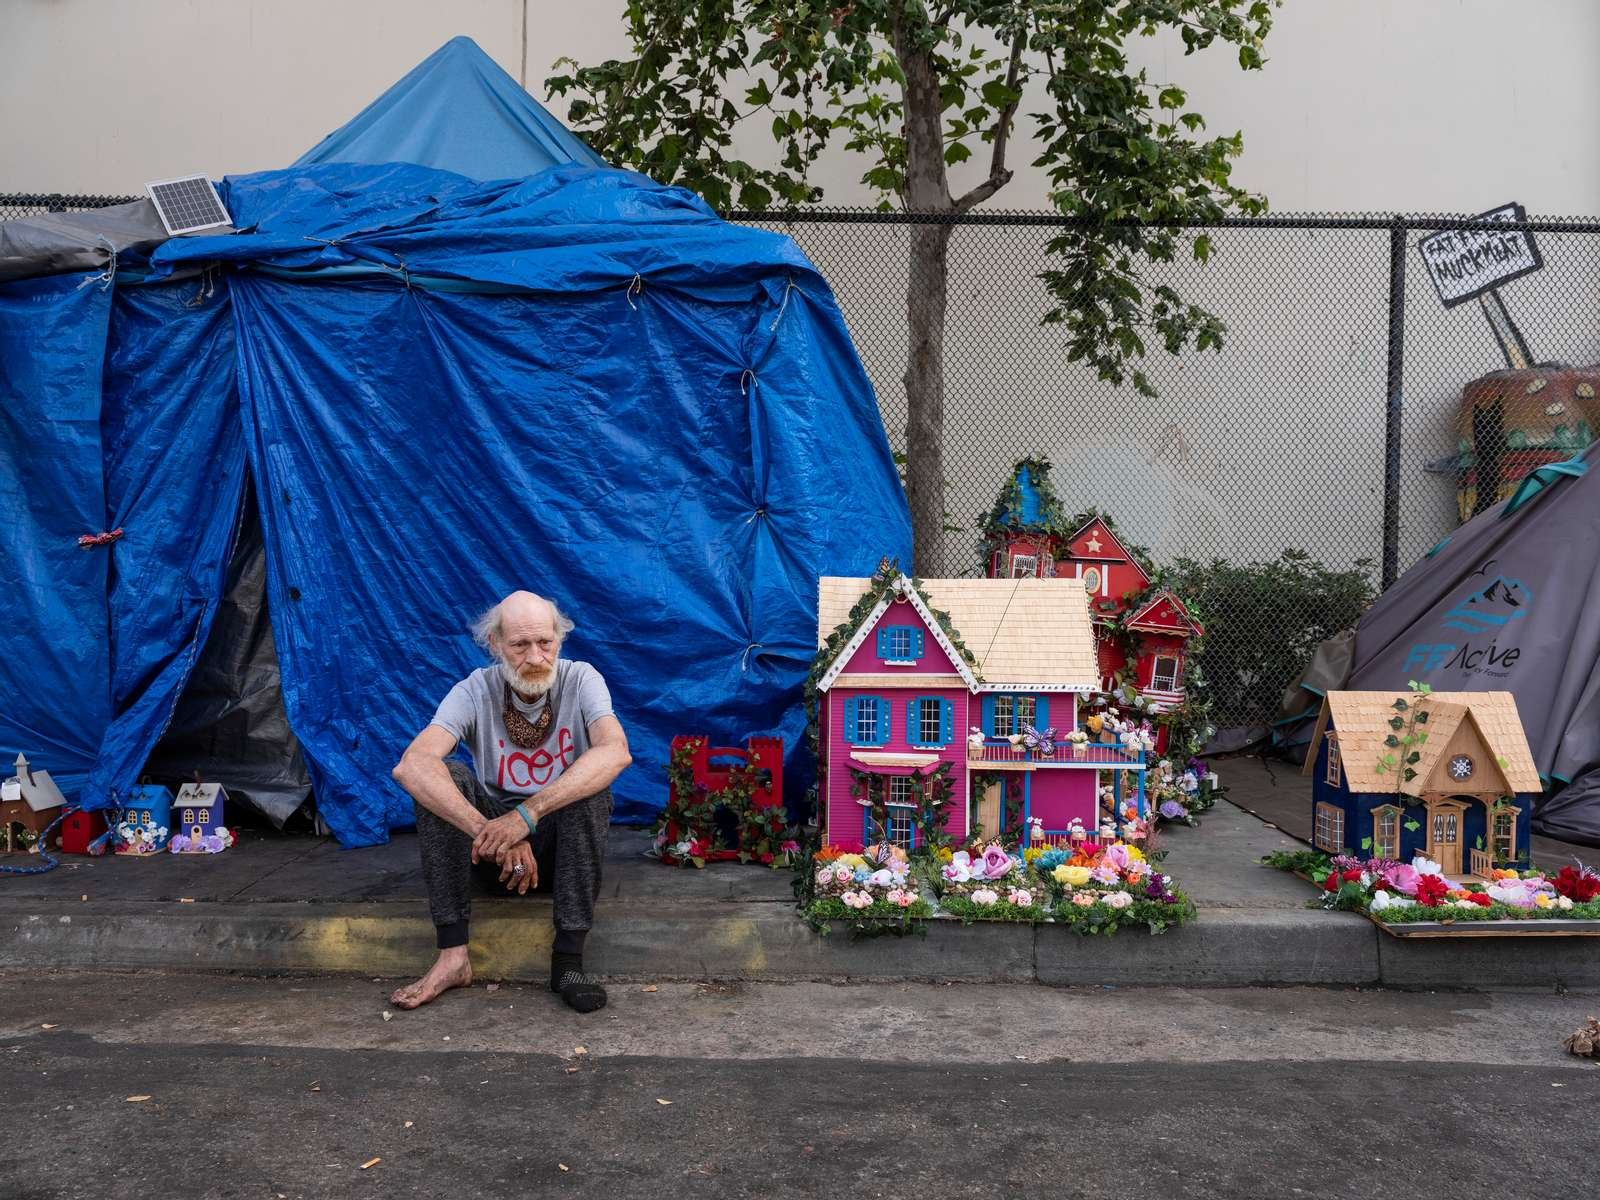 Kenny Goins lives in the encampment on Third Ave, near the offices of Google and expensive real estate, and builds doll houses and bird houses that he sells.